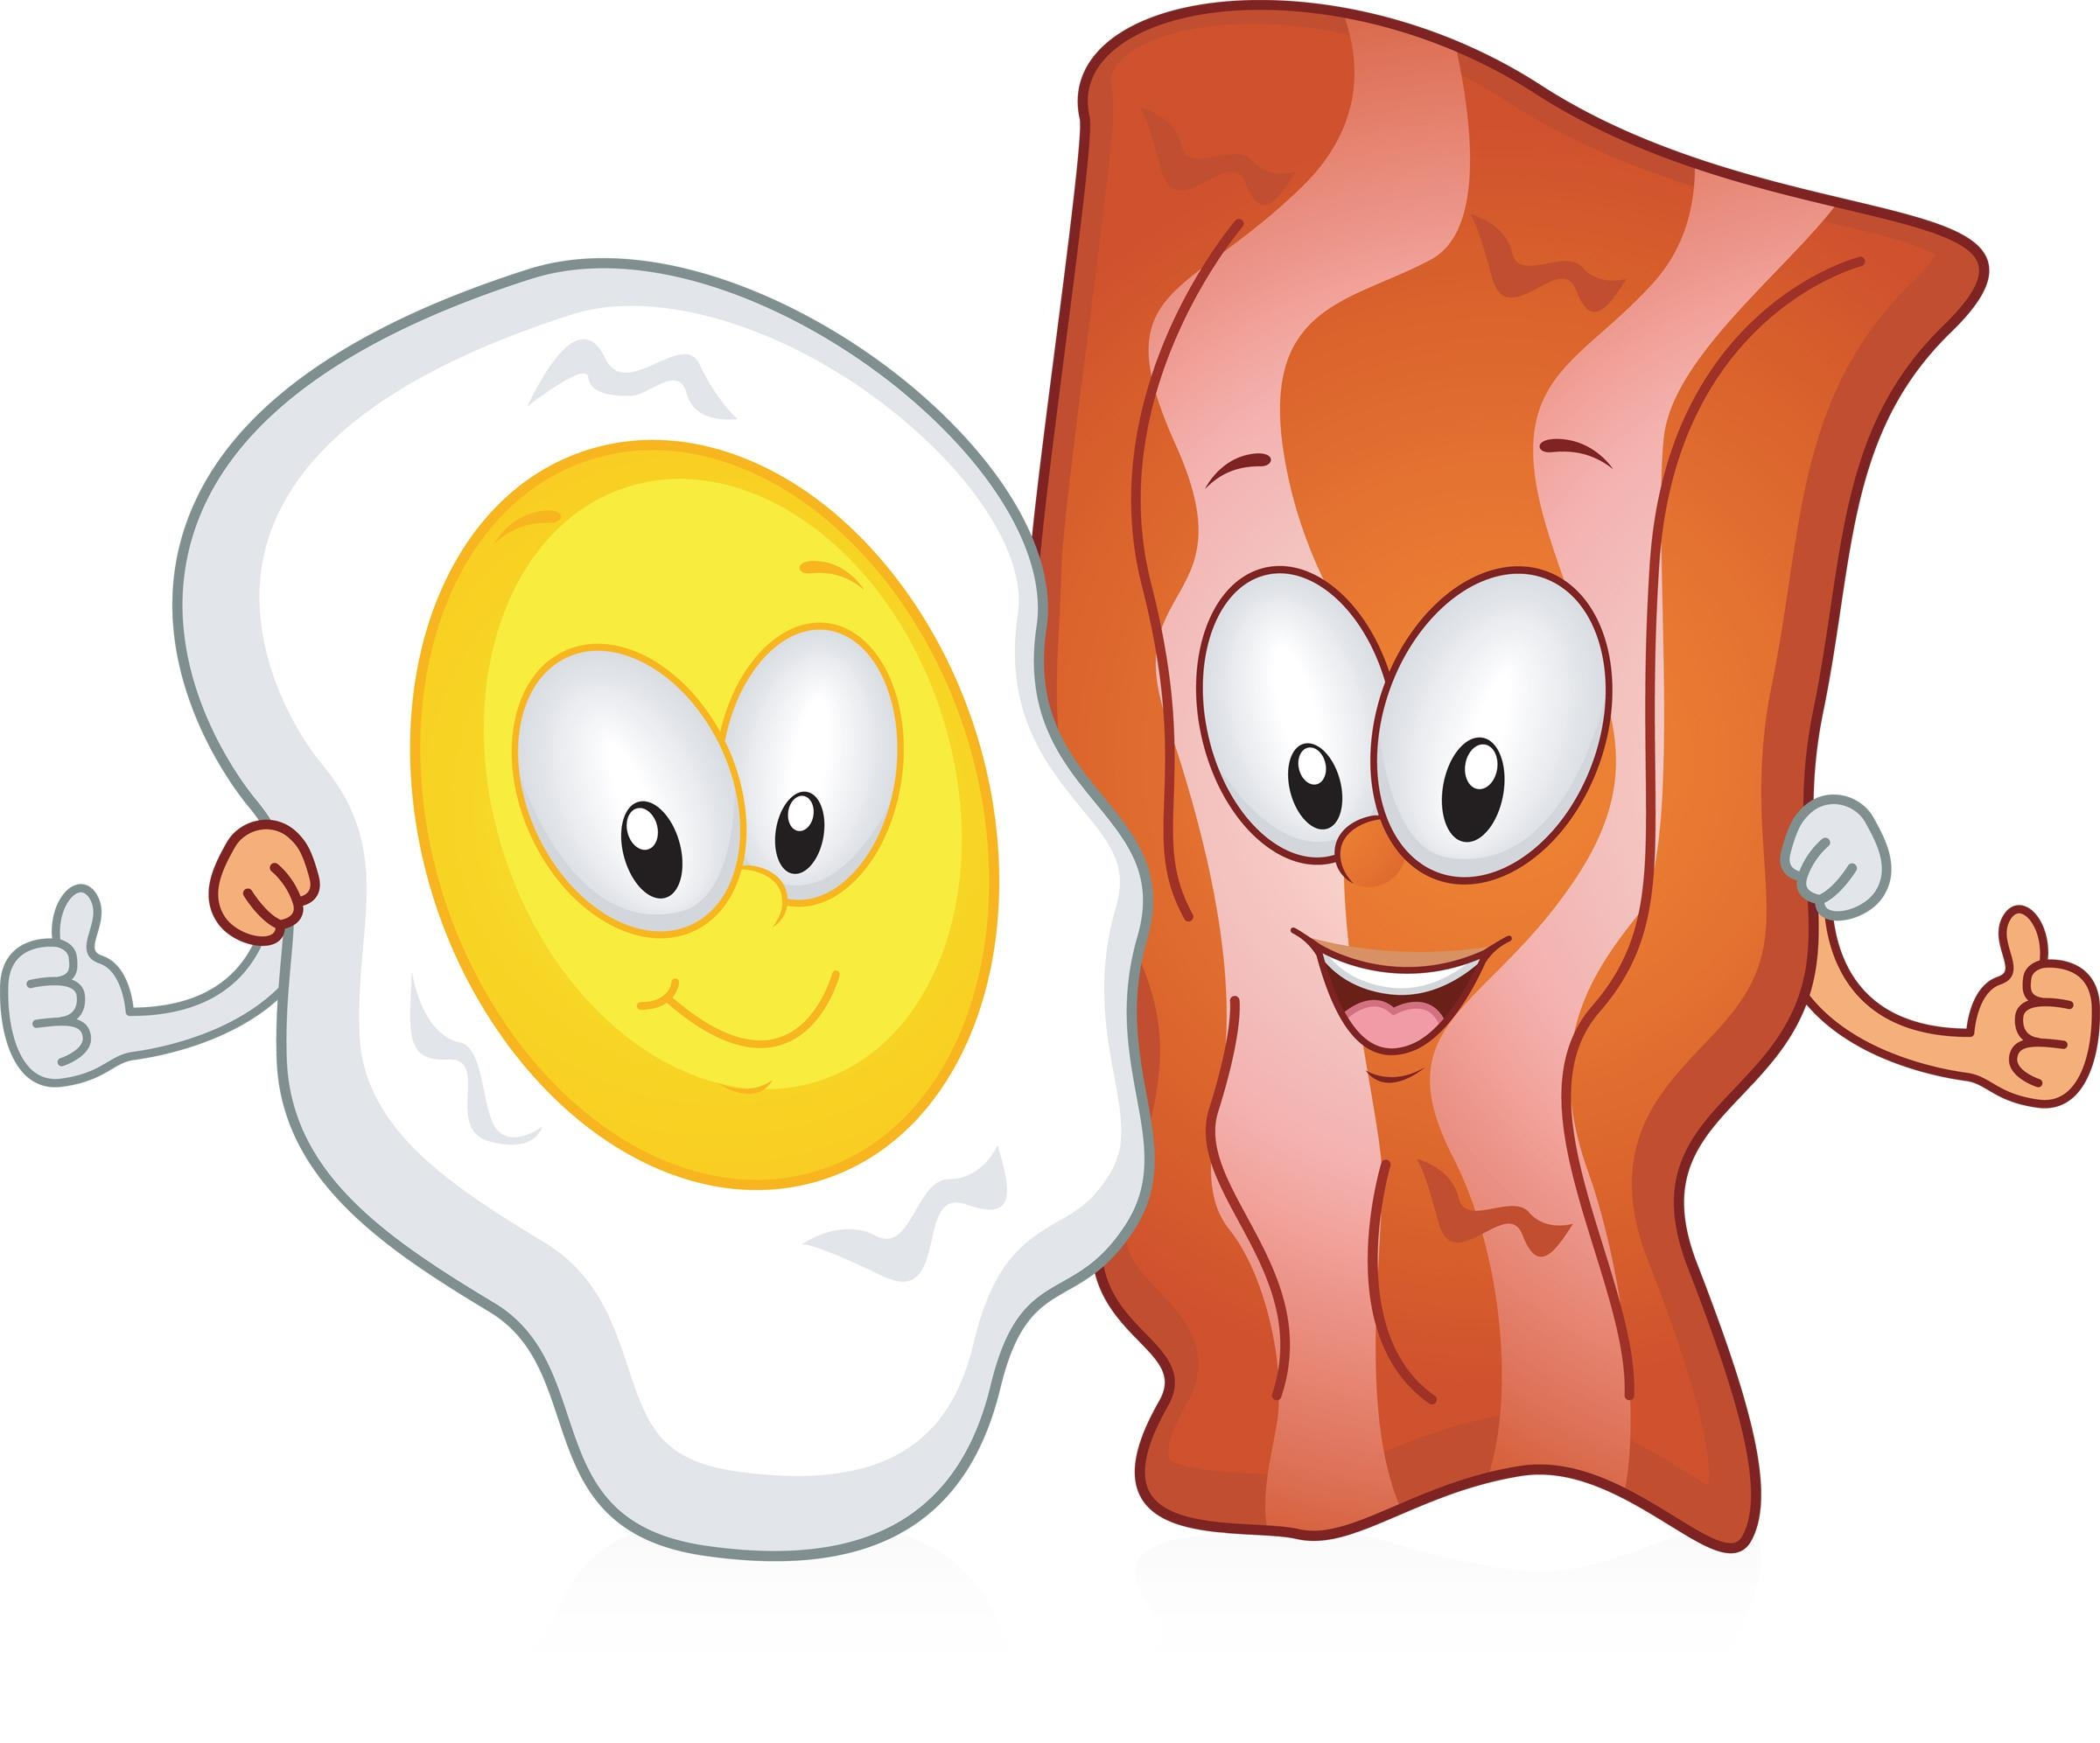 Bacon clipart bacon egg, Bacon bacon egg Transparent FREE.